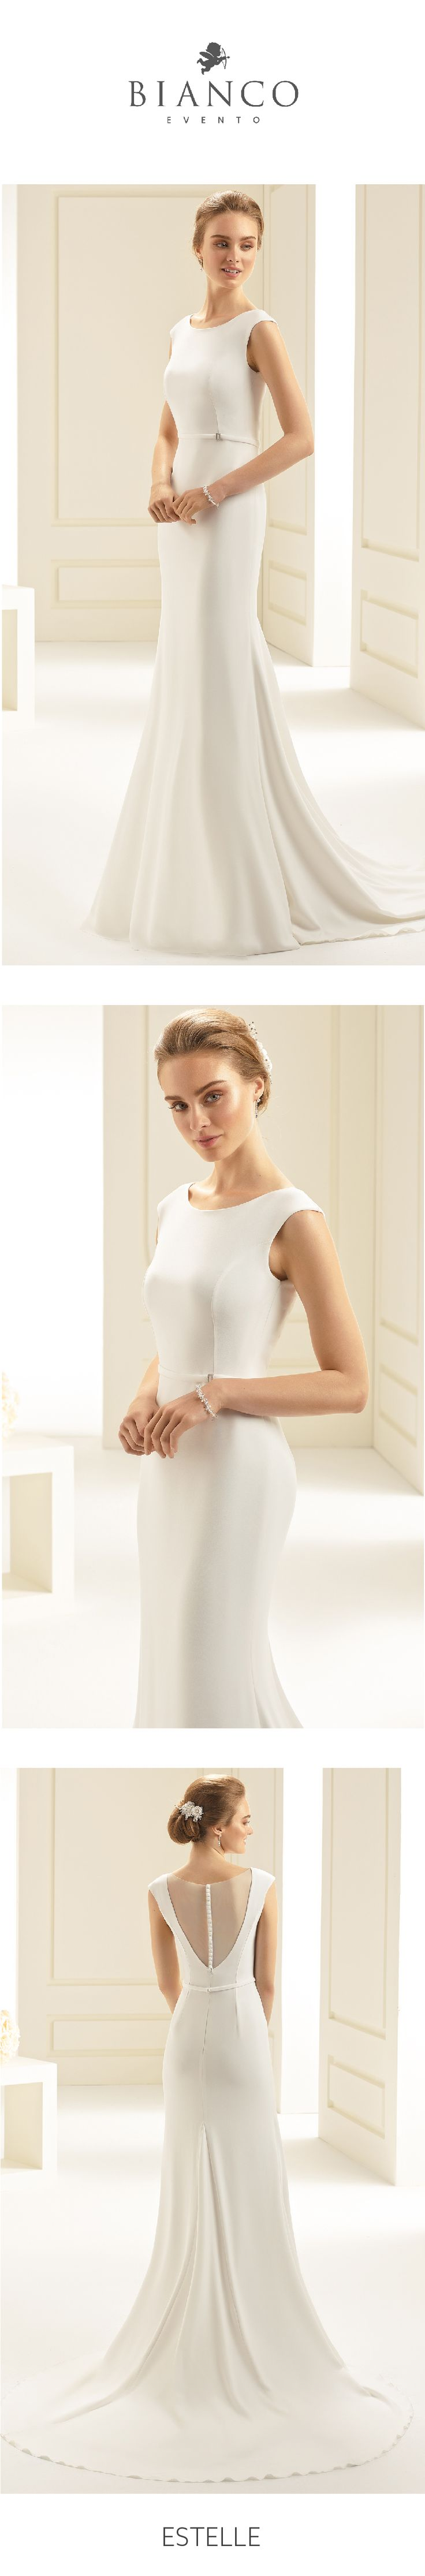 Enjoy our new styles from #NewCollection2018 on www.bianco-evento.com #biancoevento #biancoevento2018 #weddingdress #bridetobe